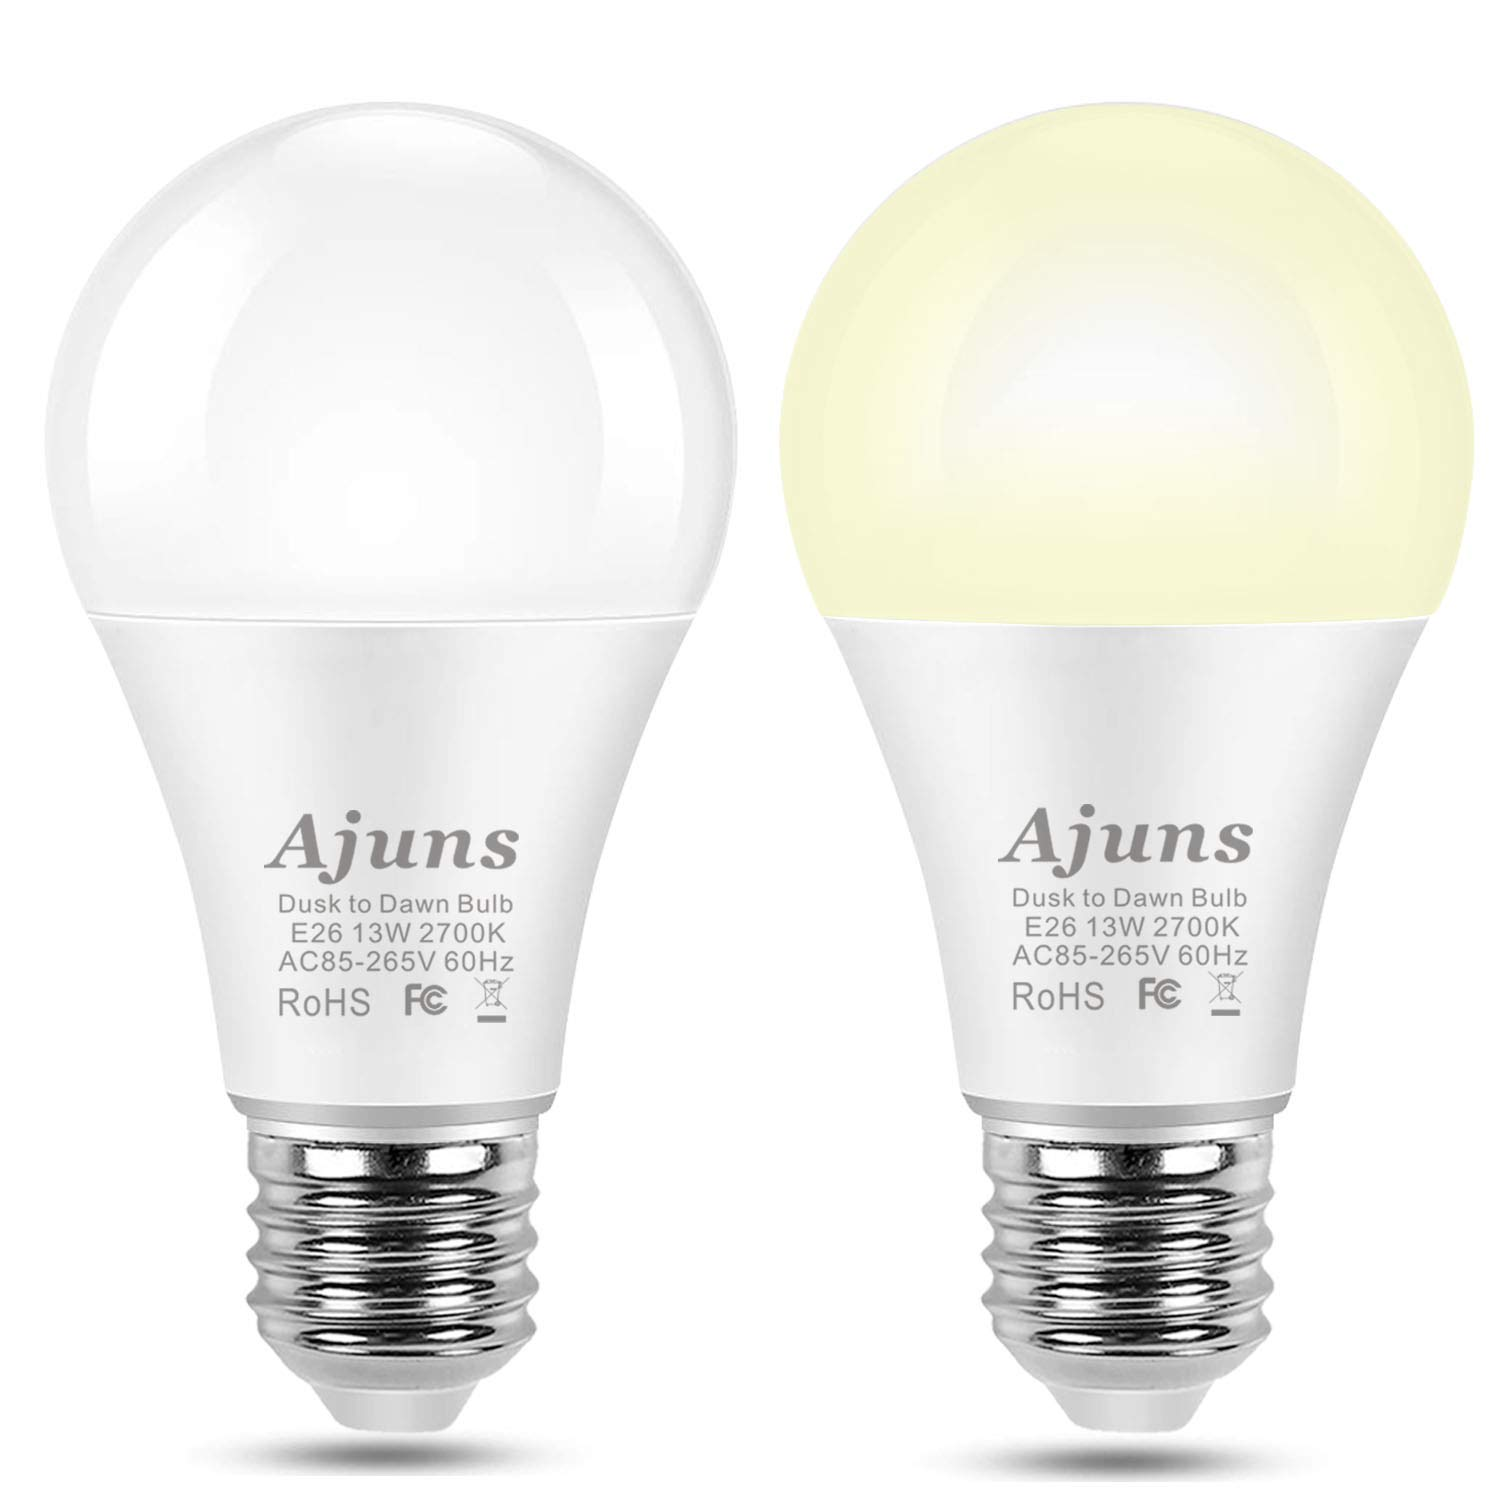 Dusk to Dawn Light Bulb,Sensor LED Light Bulb 100W Equivalent Automatic On/Off for Corridors, Stairs, Garages, Patios, E26 Base13W Warm White 2700K, 2Pack